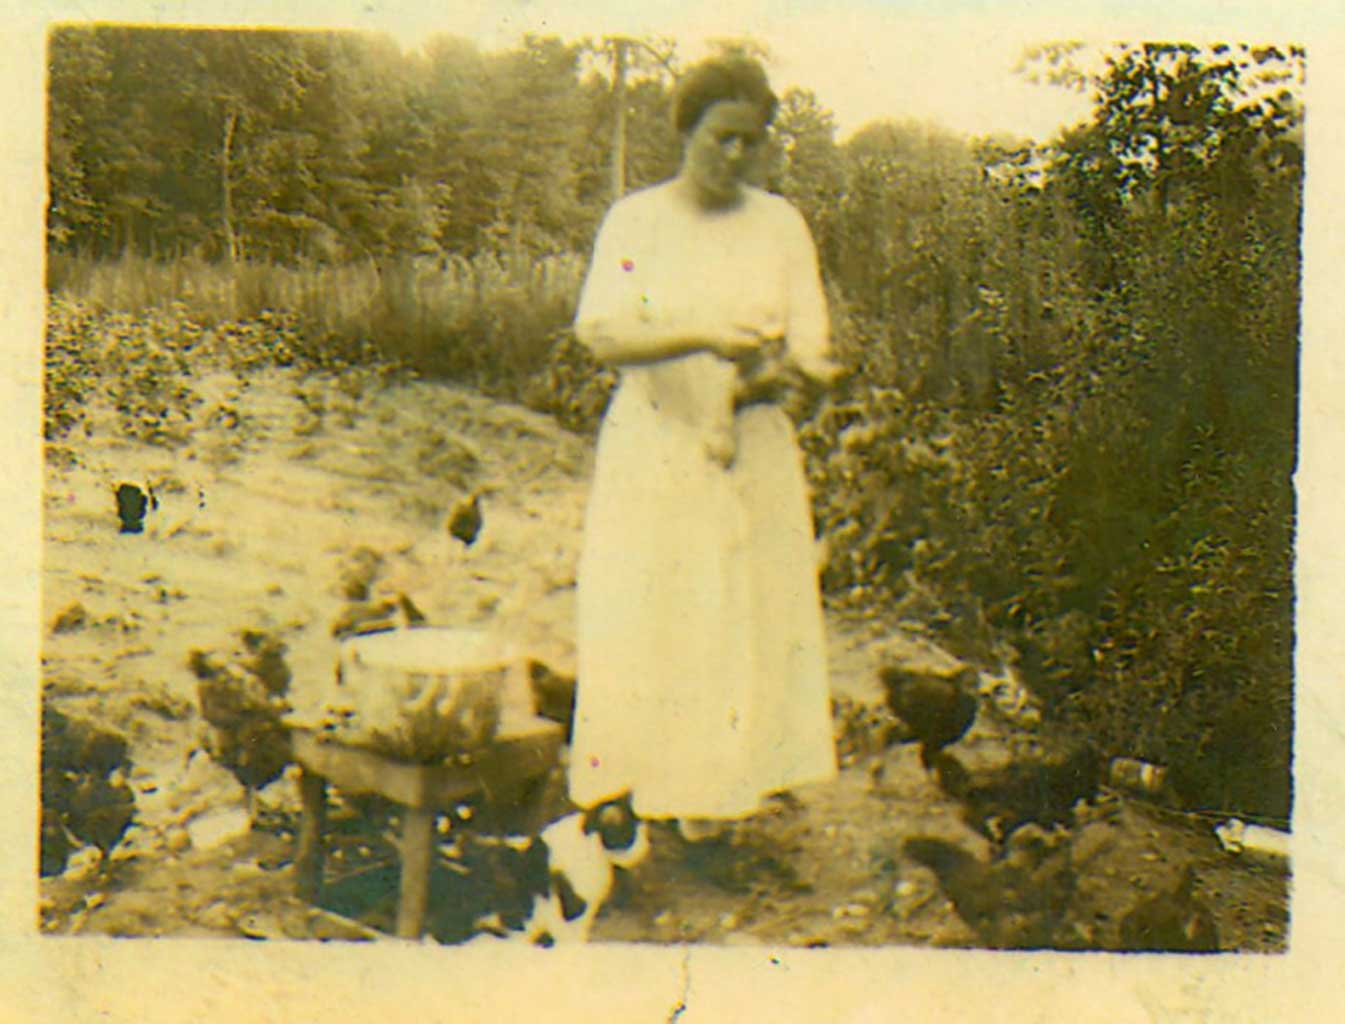 lady-with-chickens-and-one-cat-img024